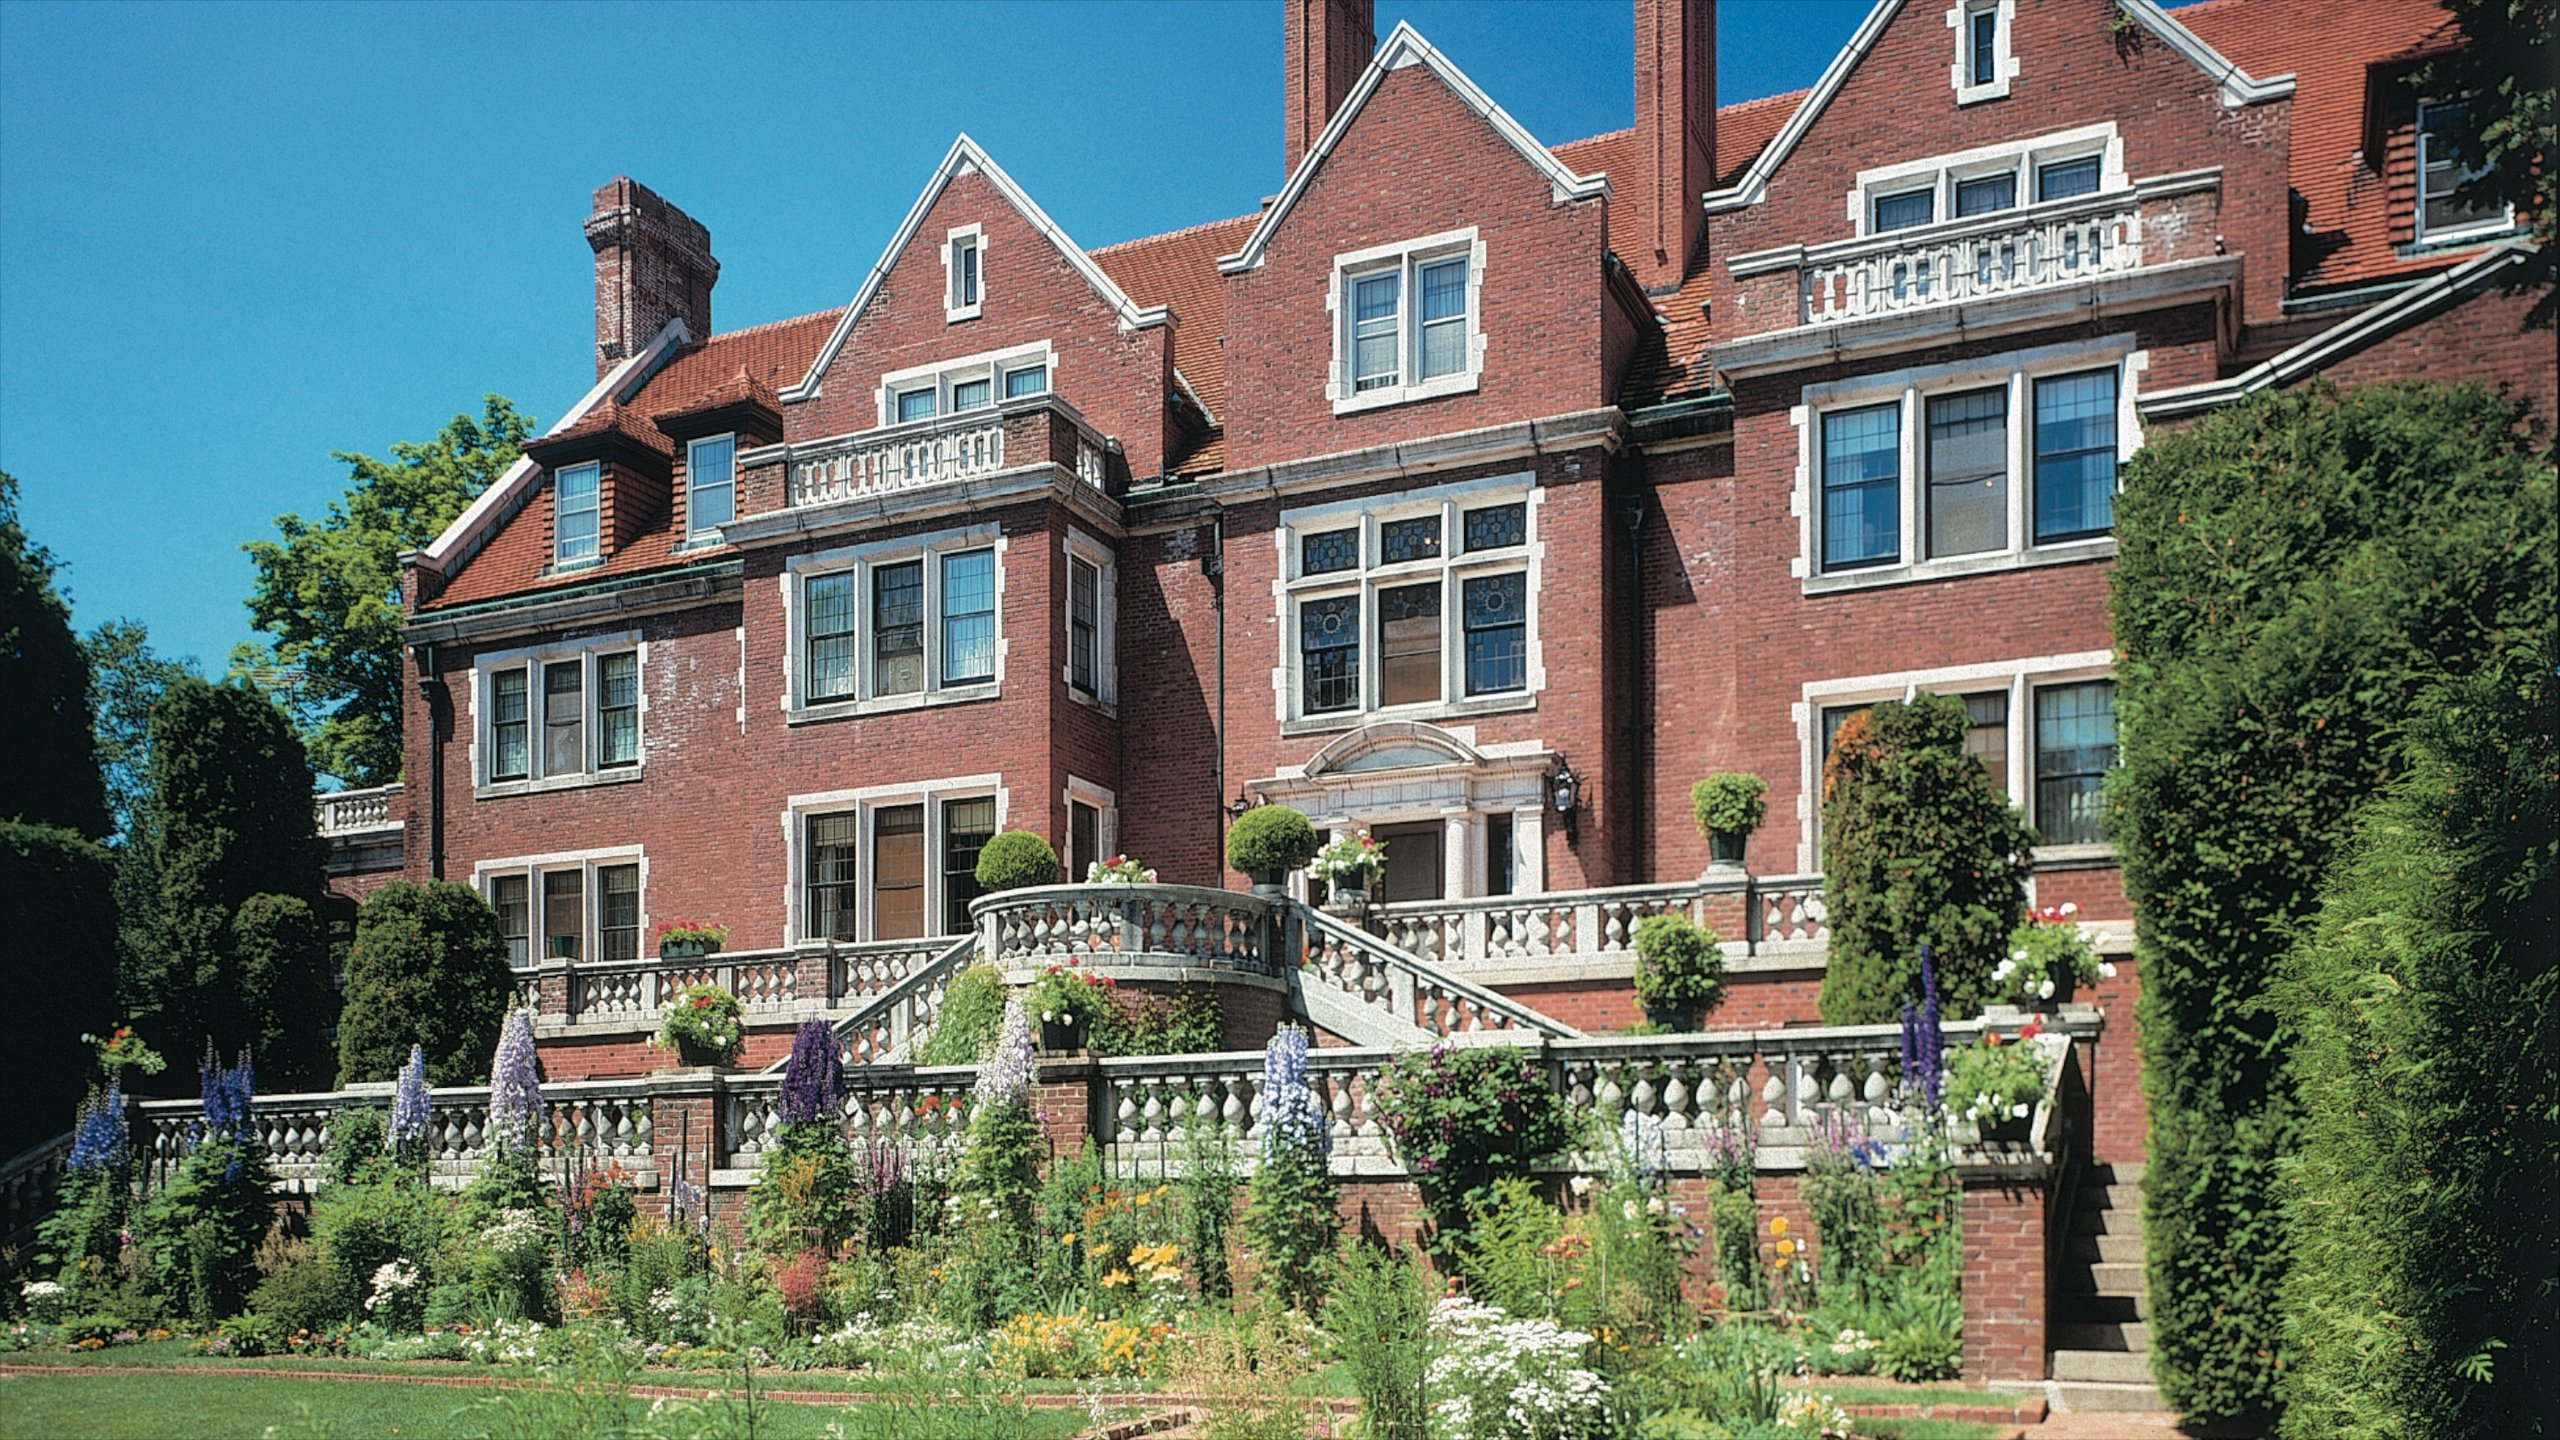 Top 10 Historic Hotels In Duluth, MN Full Of Heritage $50